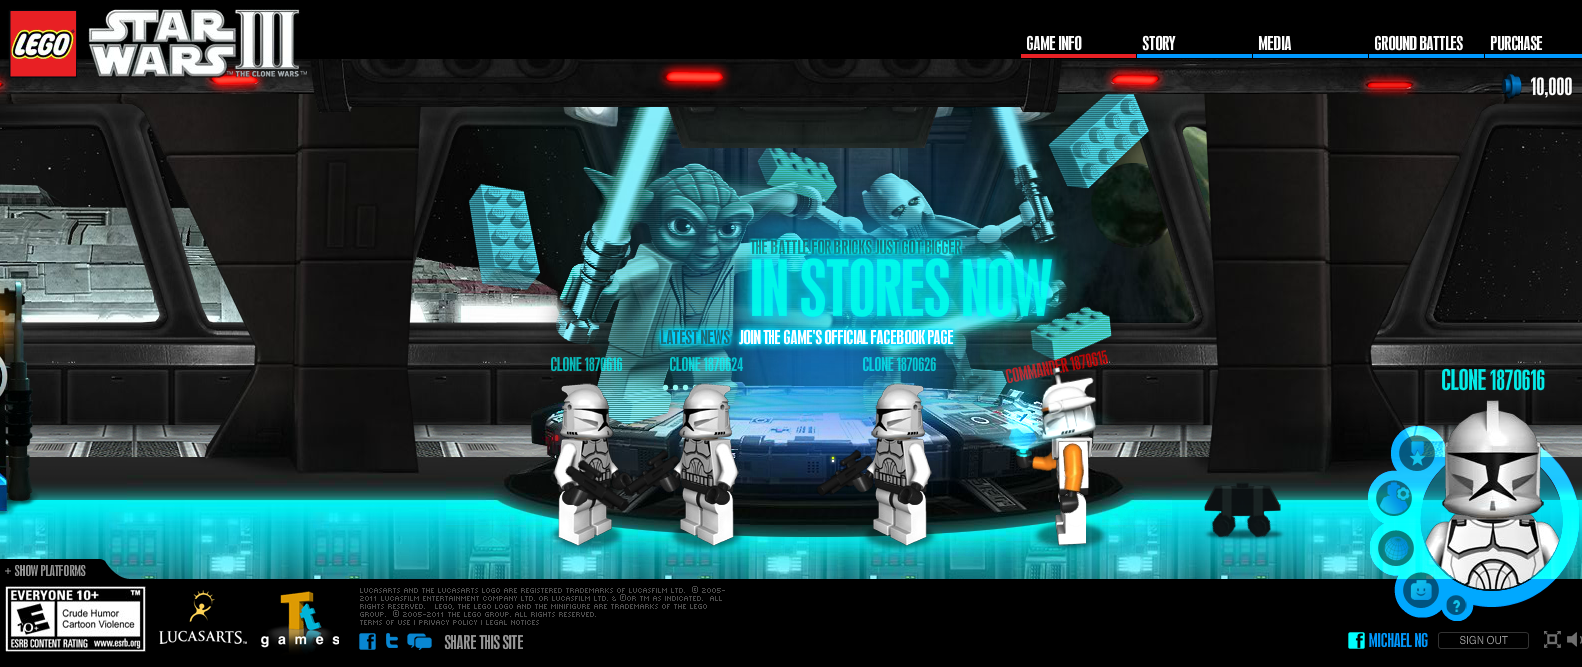 LucasArts.com   LEGO® Star Wars III  The Clone Wars.png